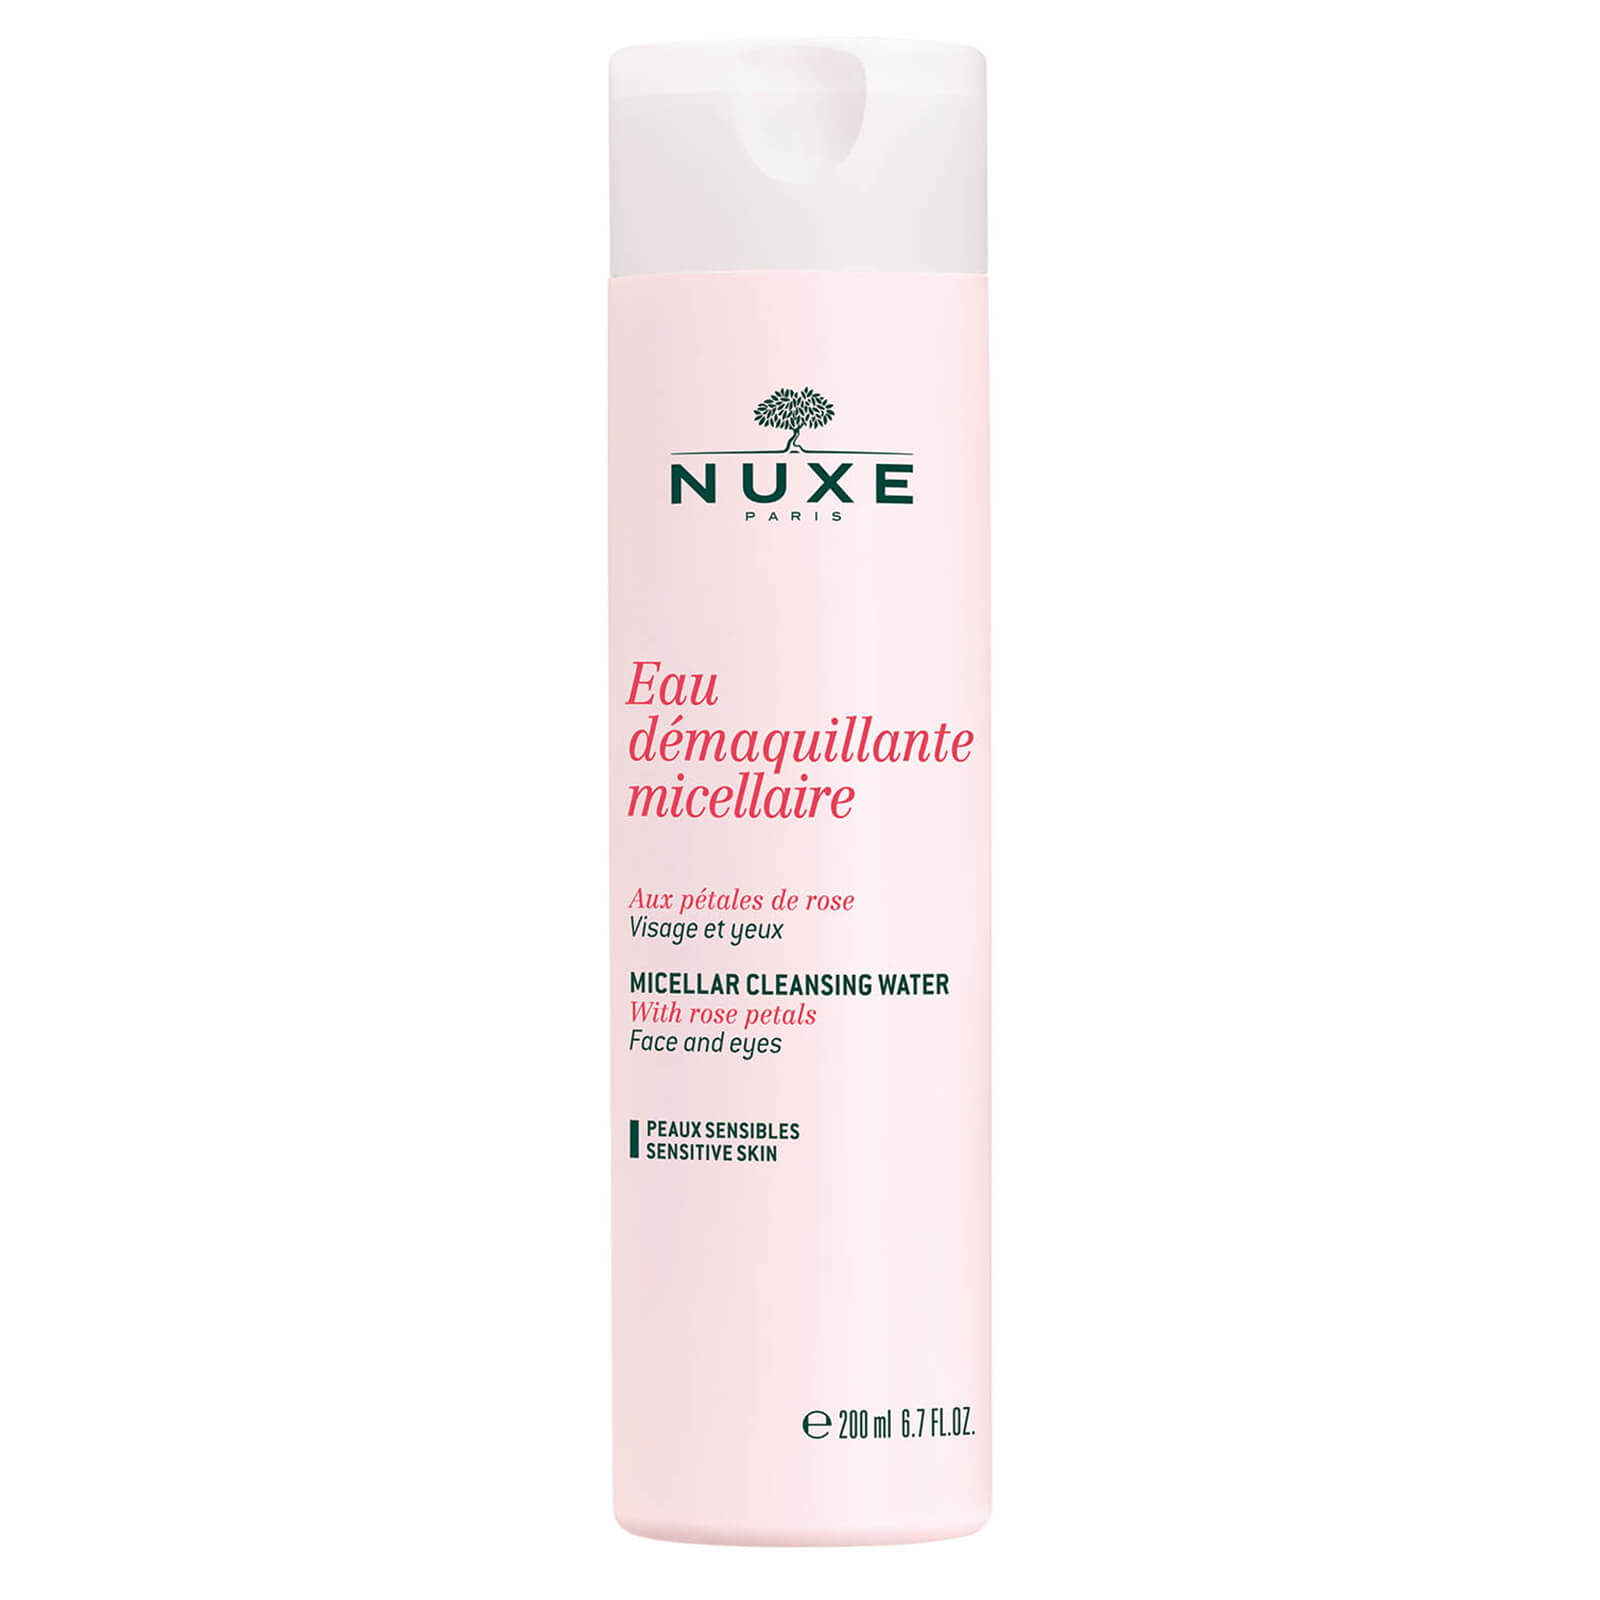 NUXE Eau Demaquillante Micellaire Micellar Cleansing Water (200ml)